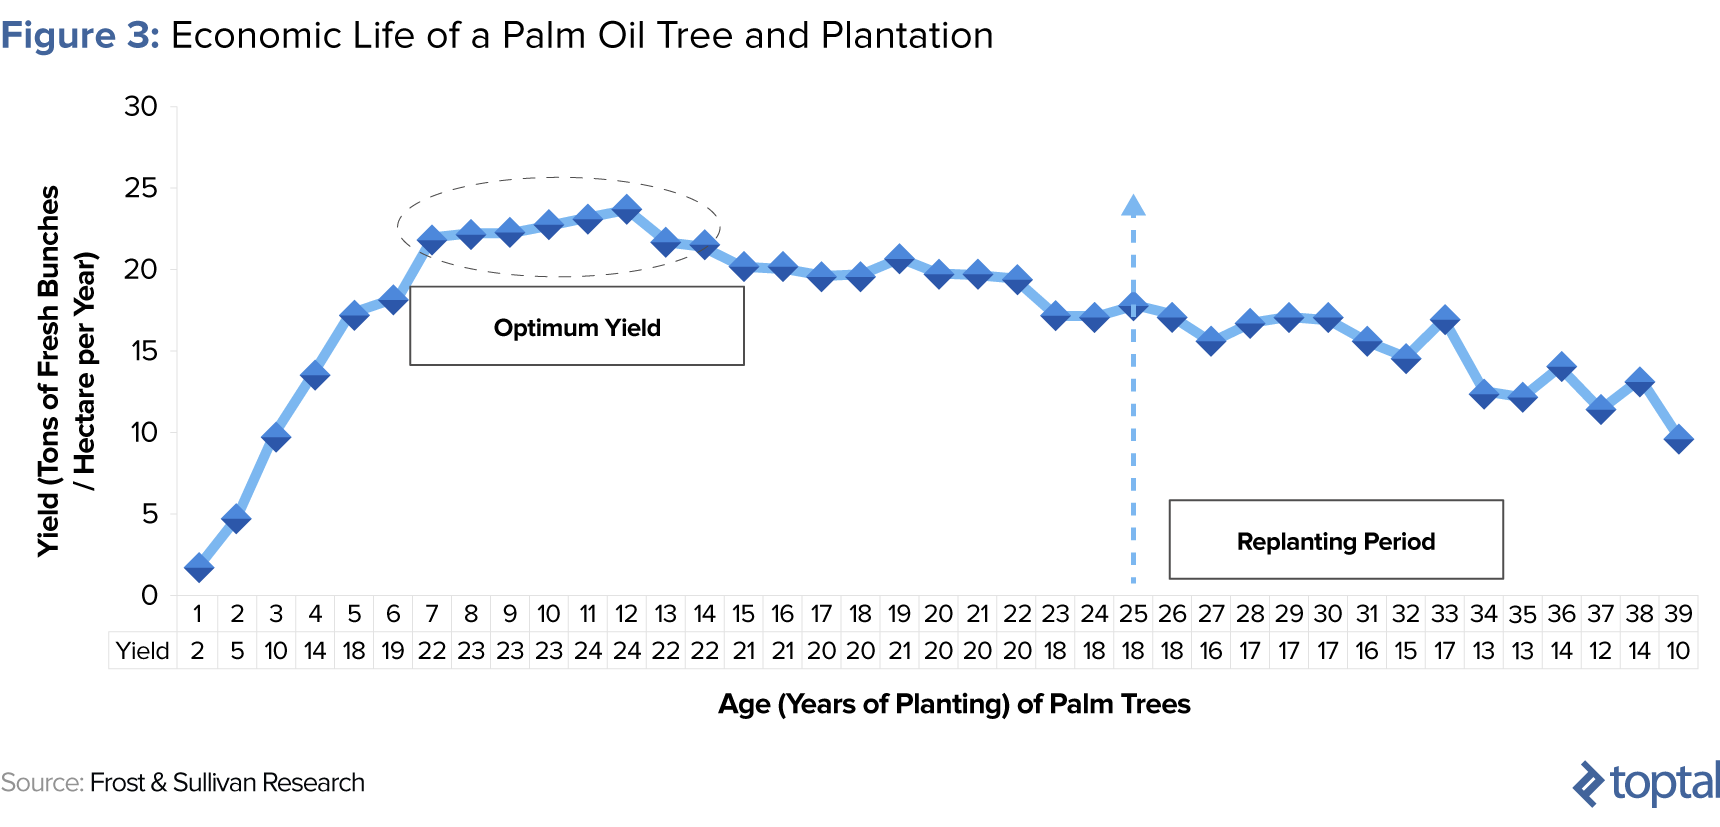 Figure 3: Economic Life of a Palm Oil Tree and Plantation